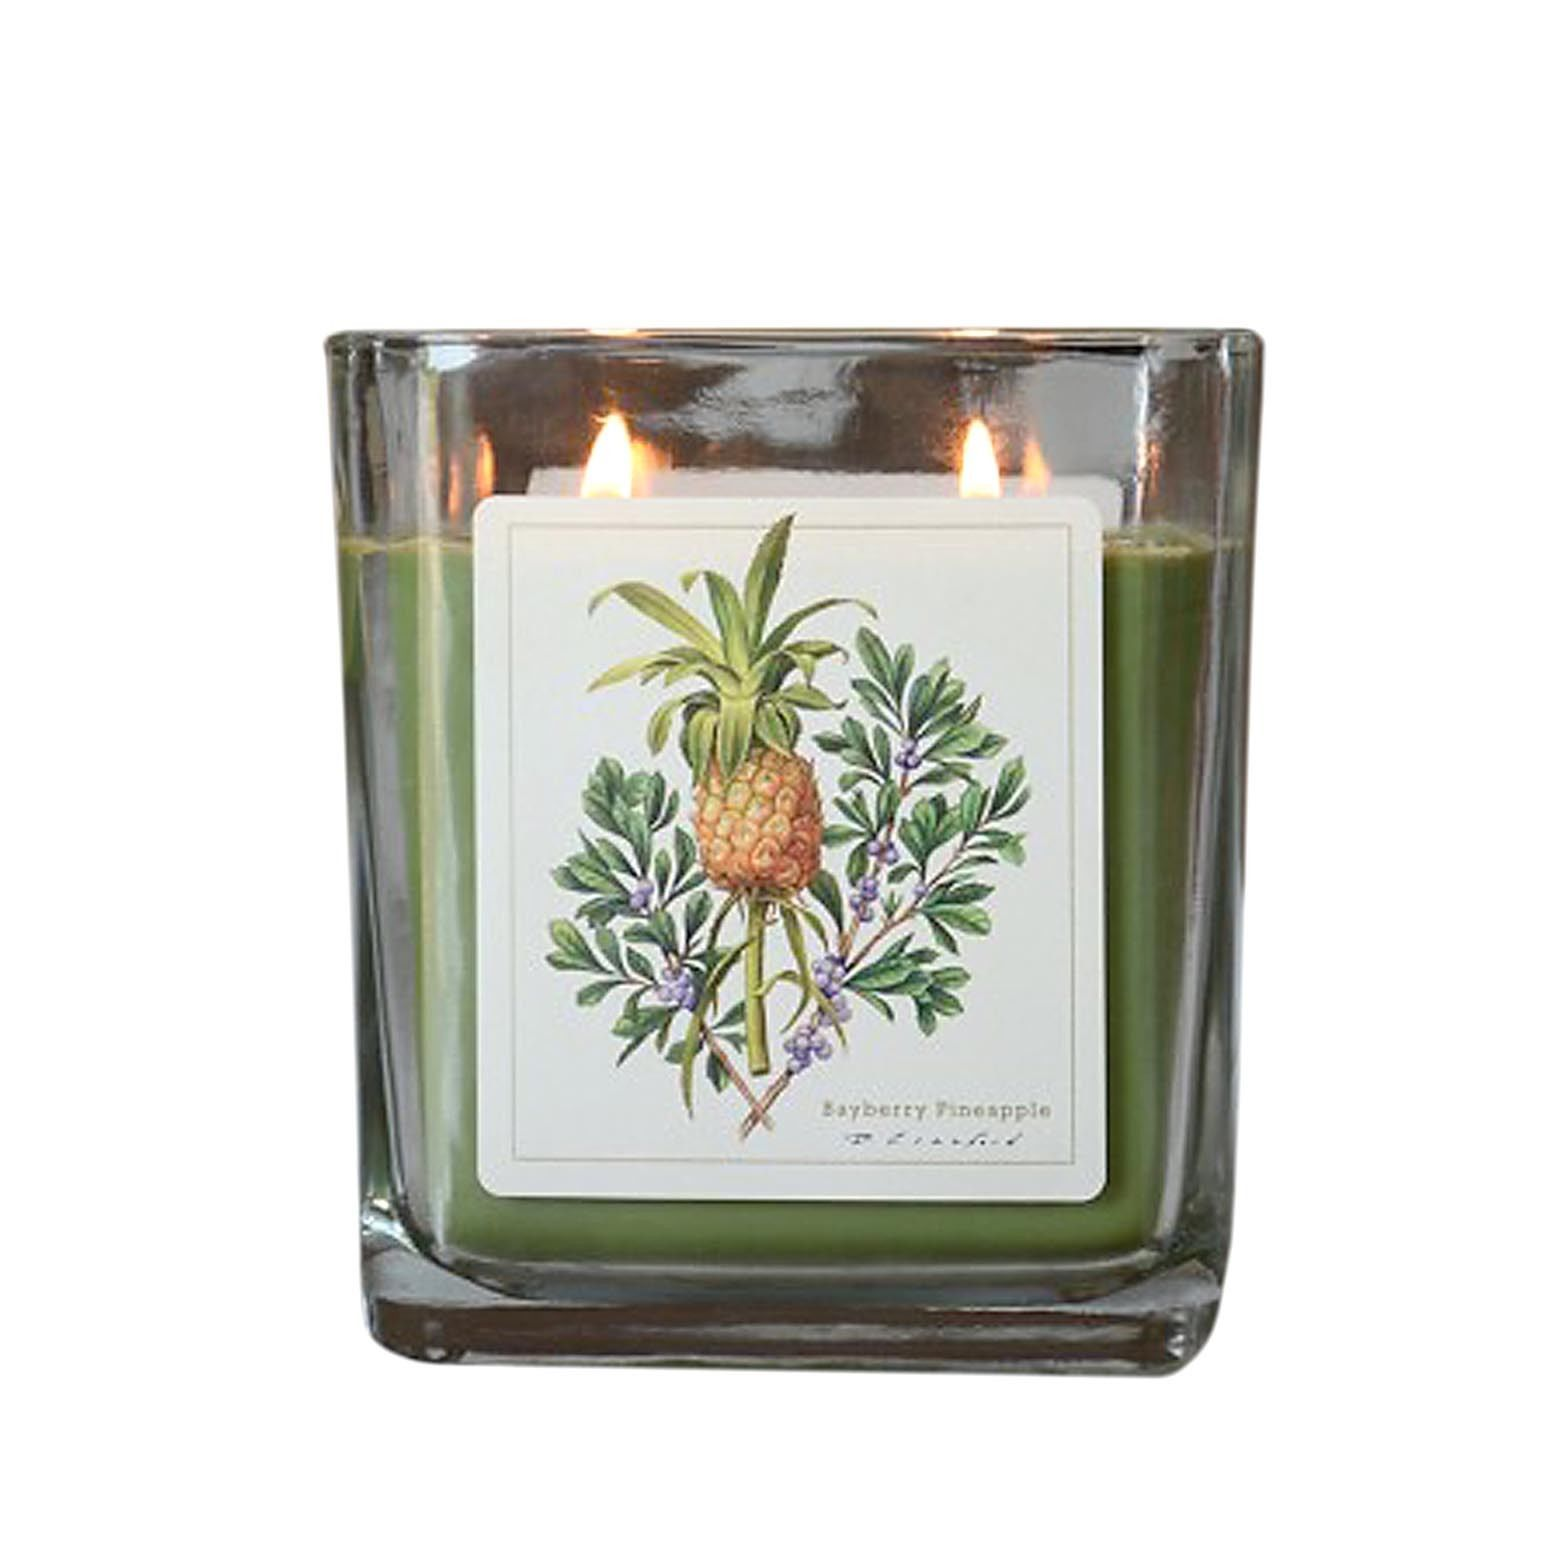 Bayberry Pineapple  Hand Poured Verdure Gift Boxed Soy Candle USA made